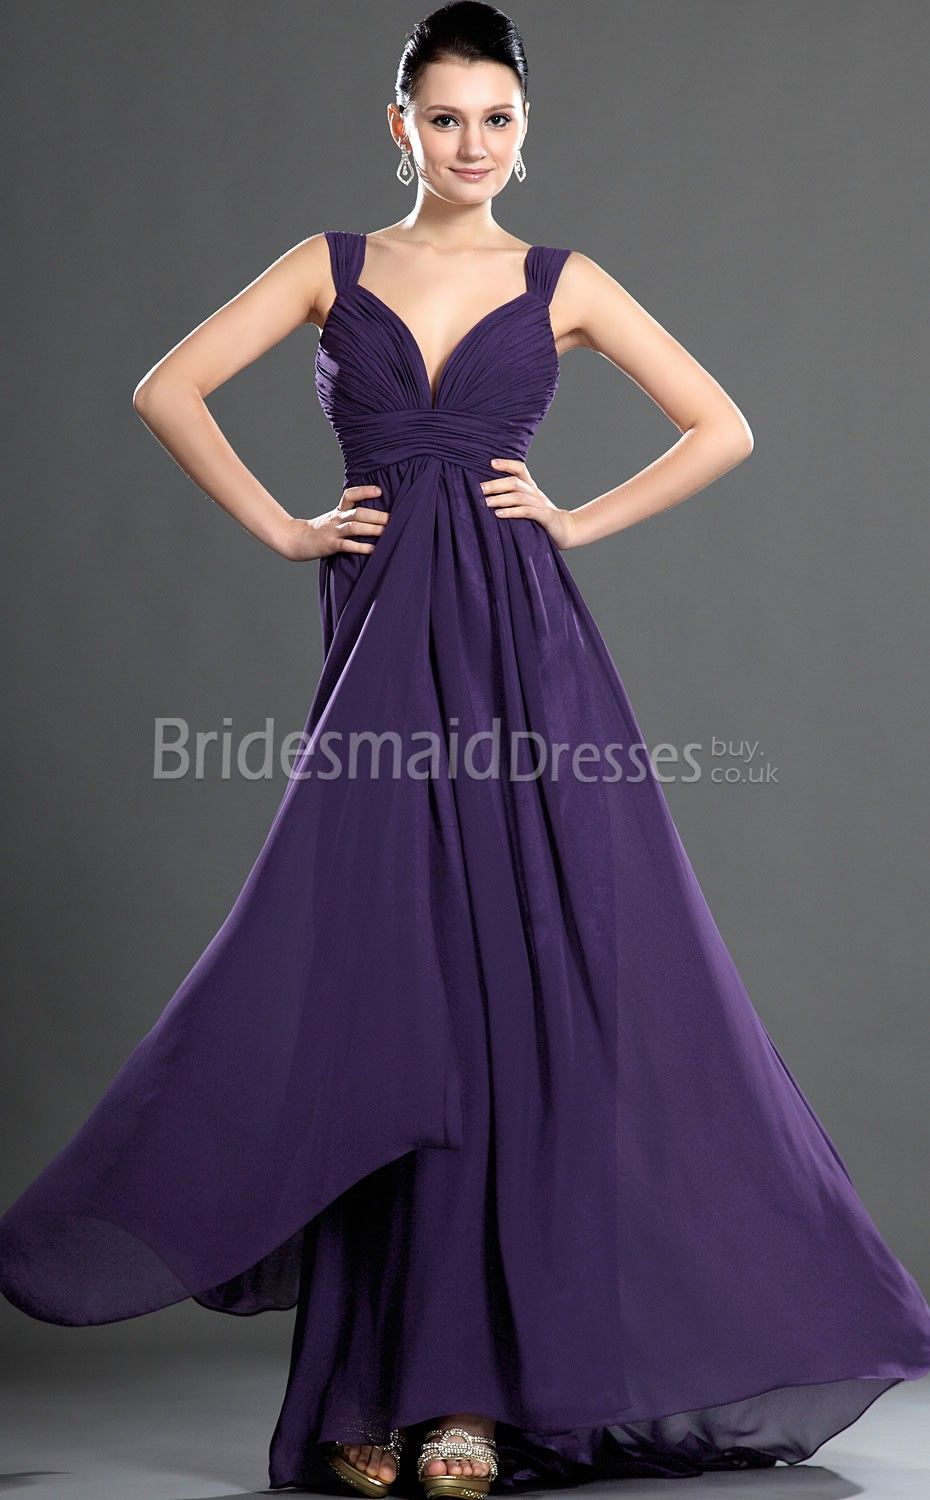 Purple bridesmaid dresses just add a belt of bling wedding purple bridesmaid dresses just add a belt of bling ombrellifo Image collections